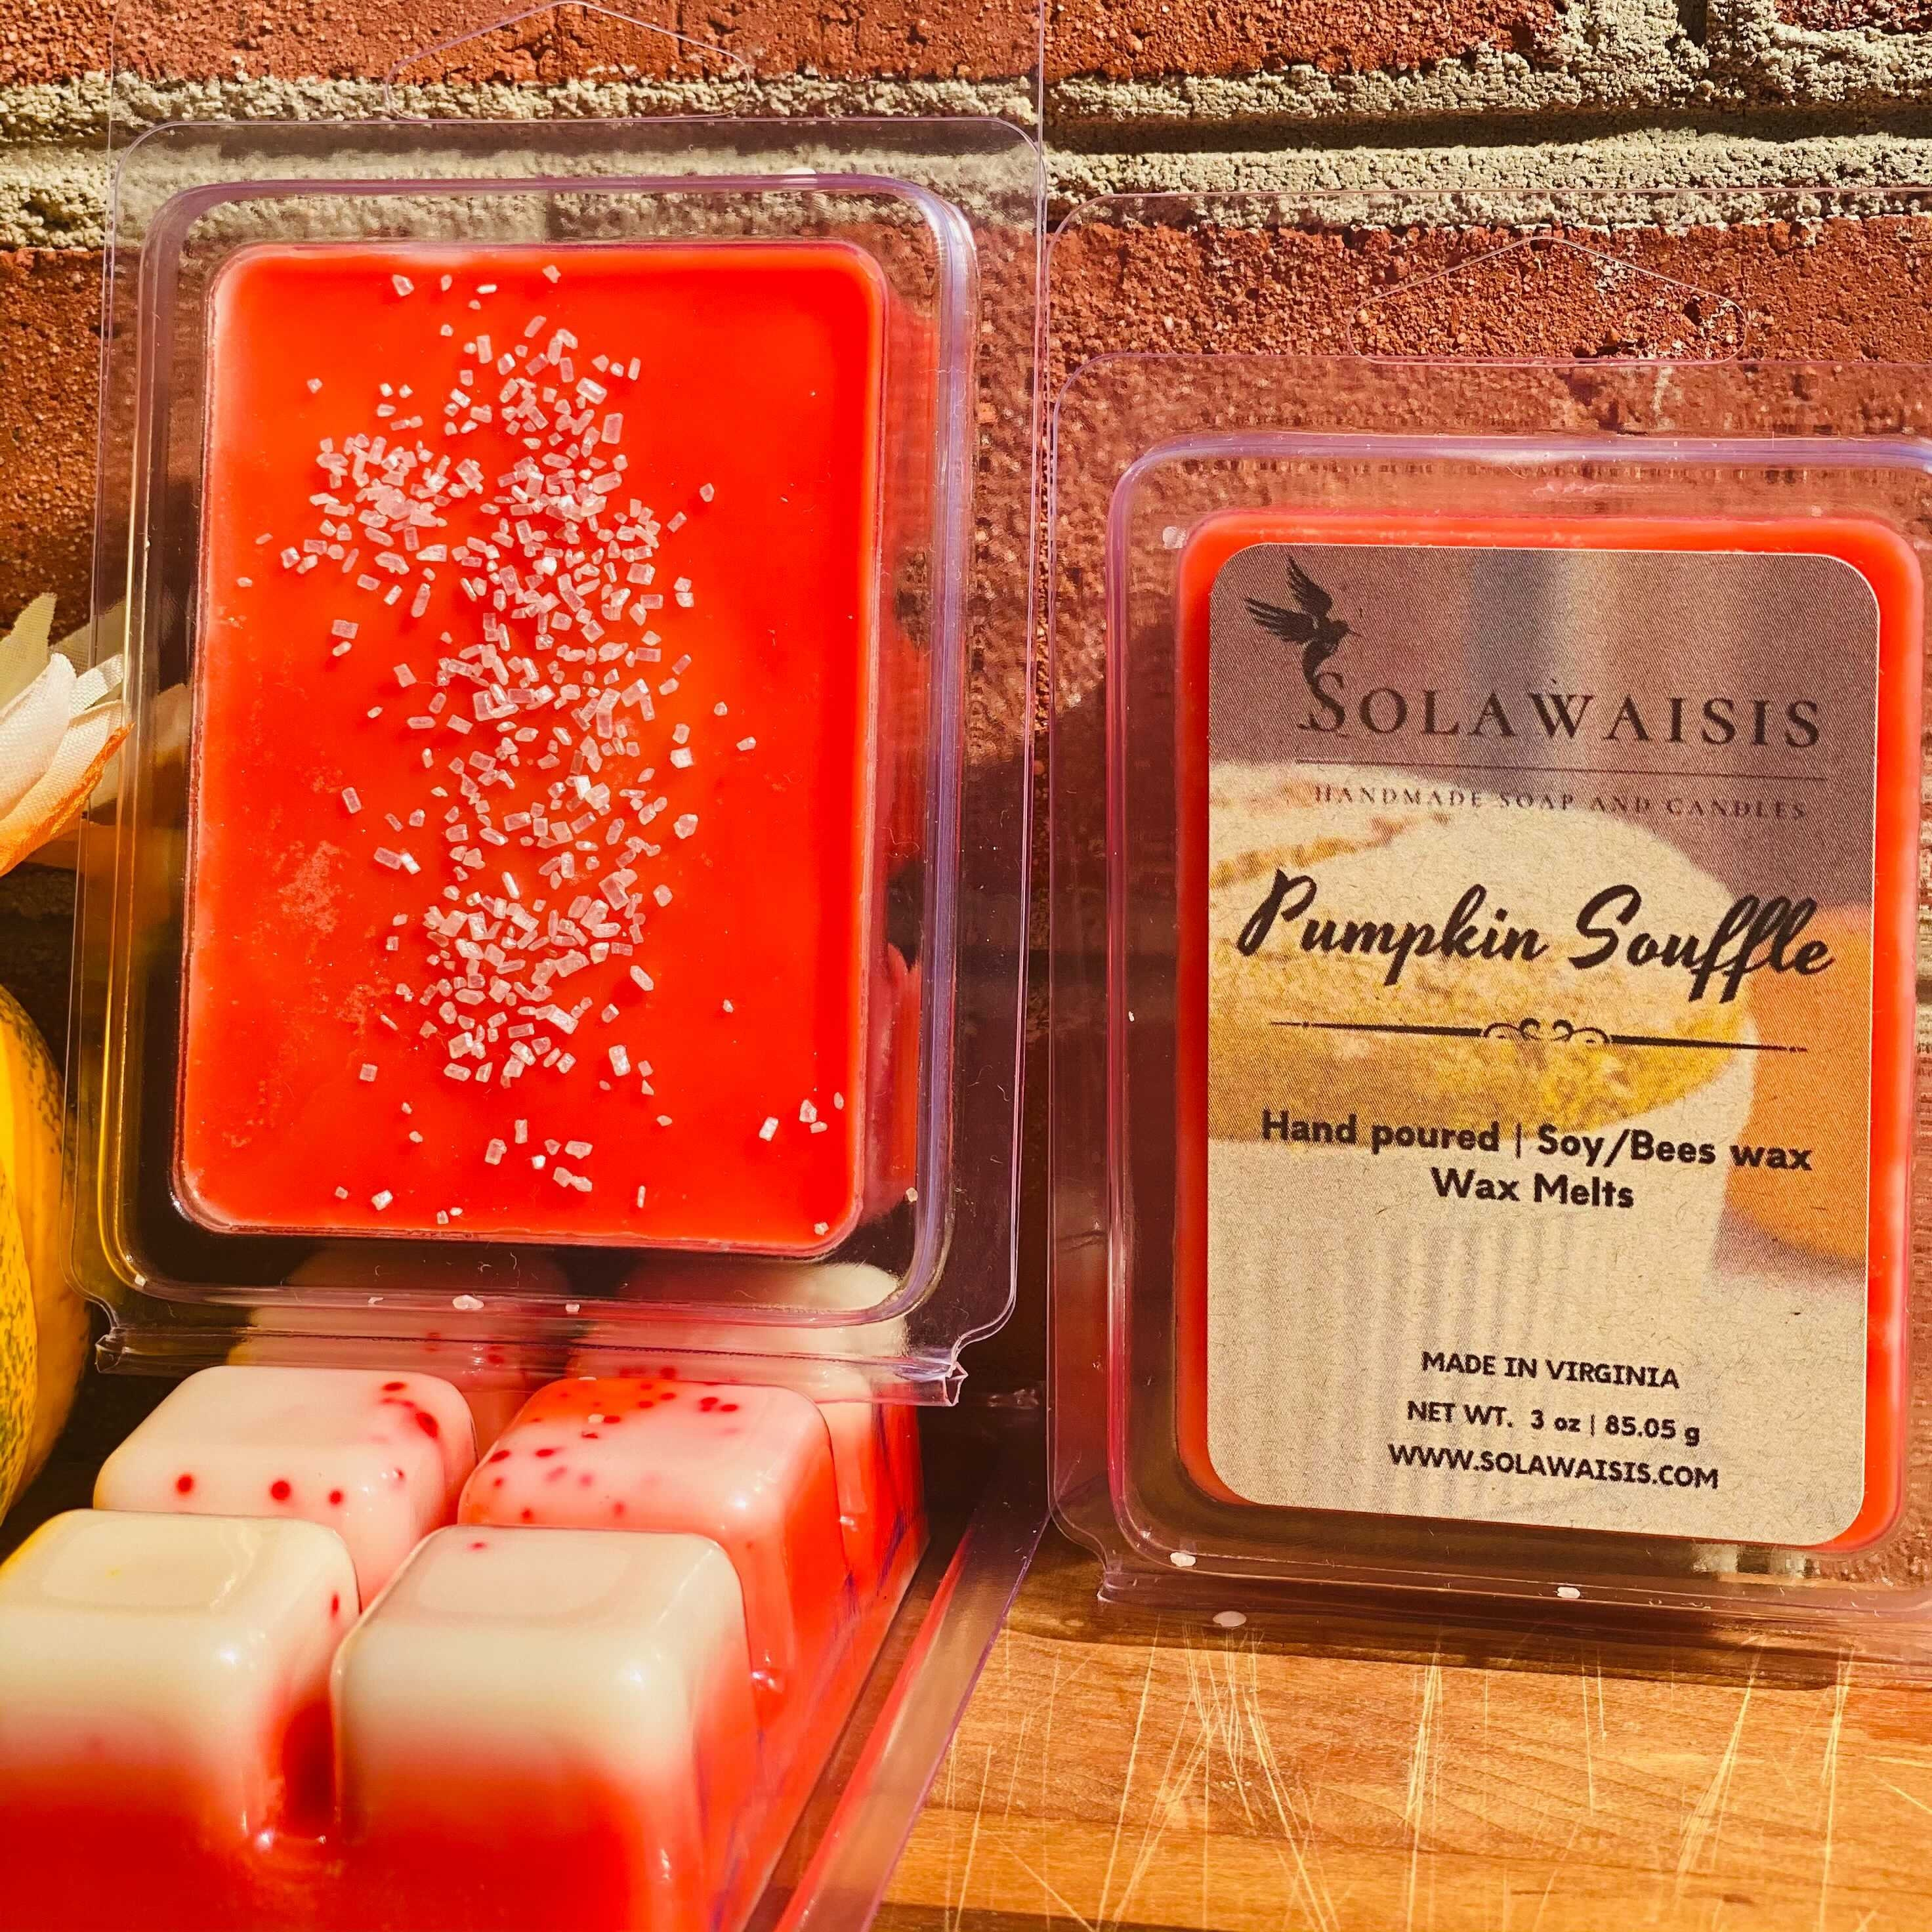 Buy 3 get 1 Free Wax Melts Scented Wax Melts Pure Soy Bees